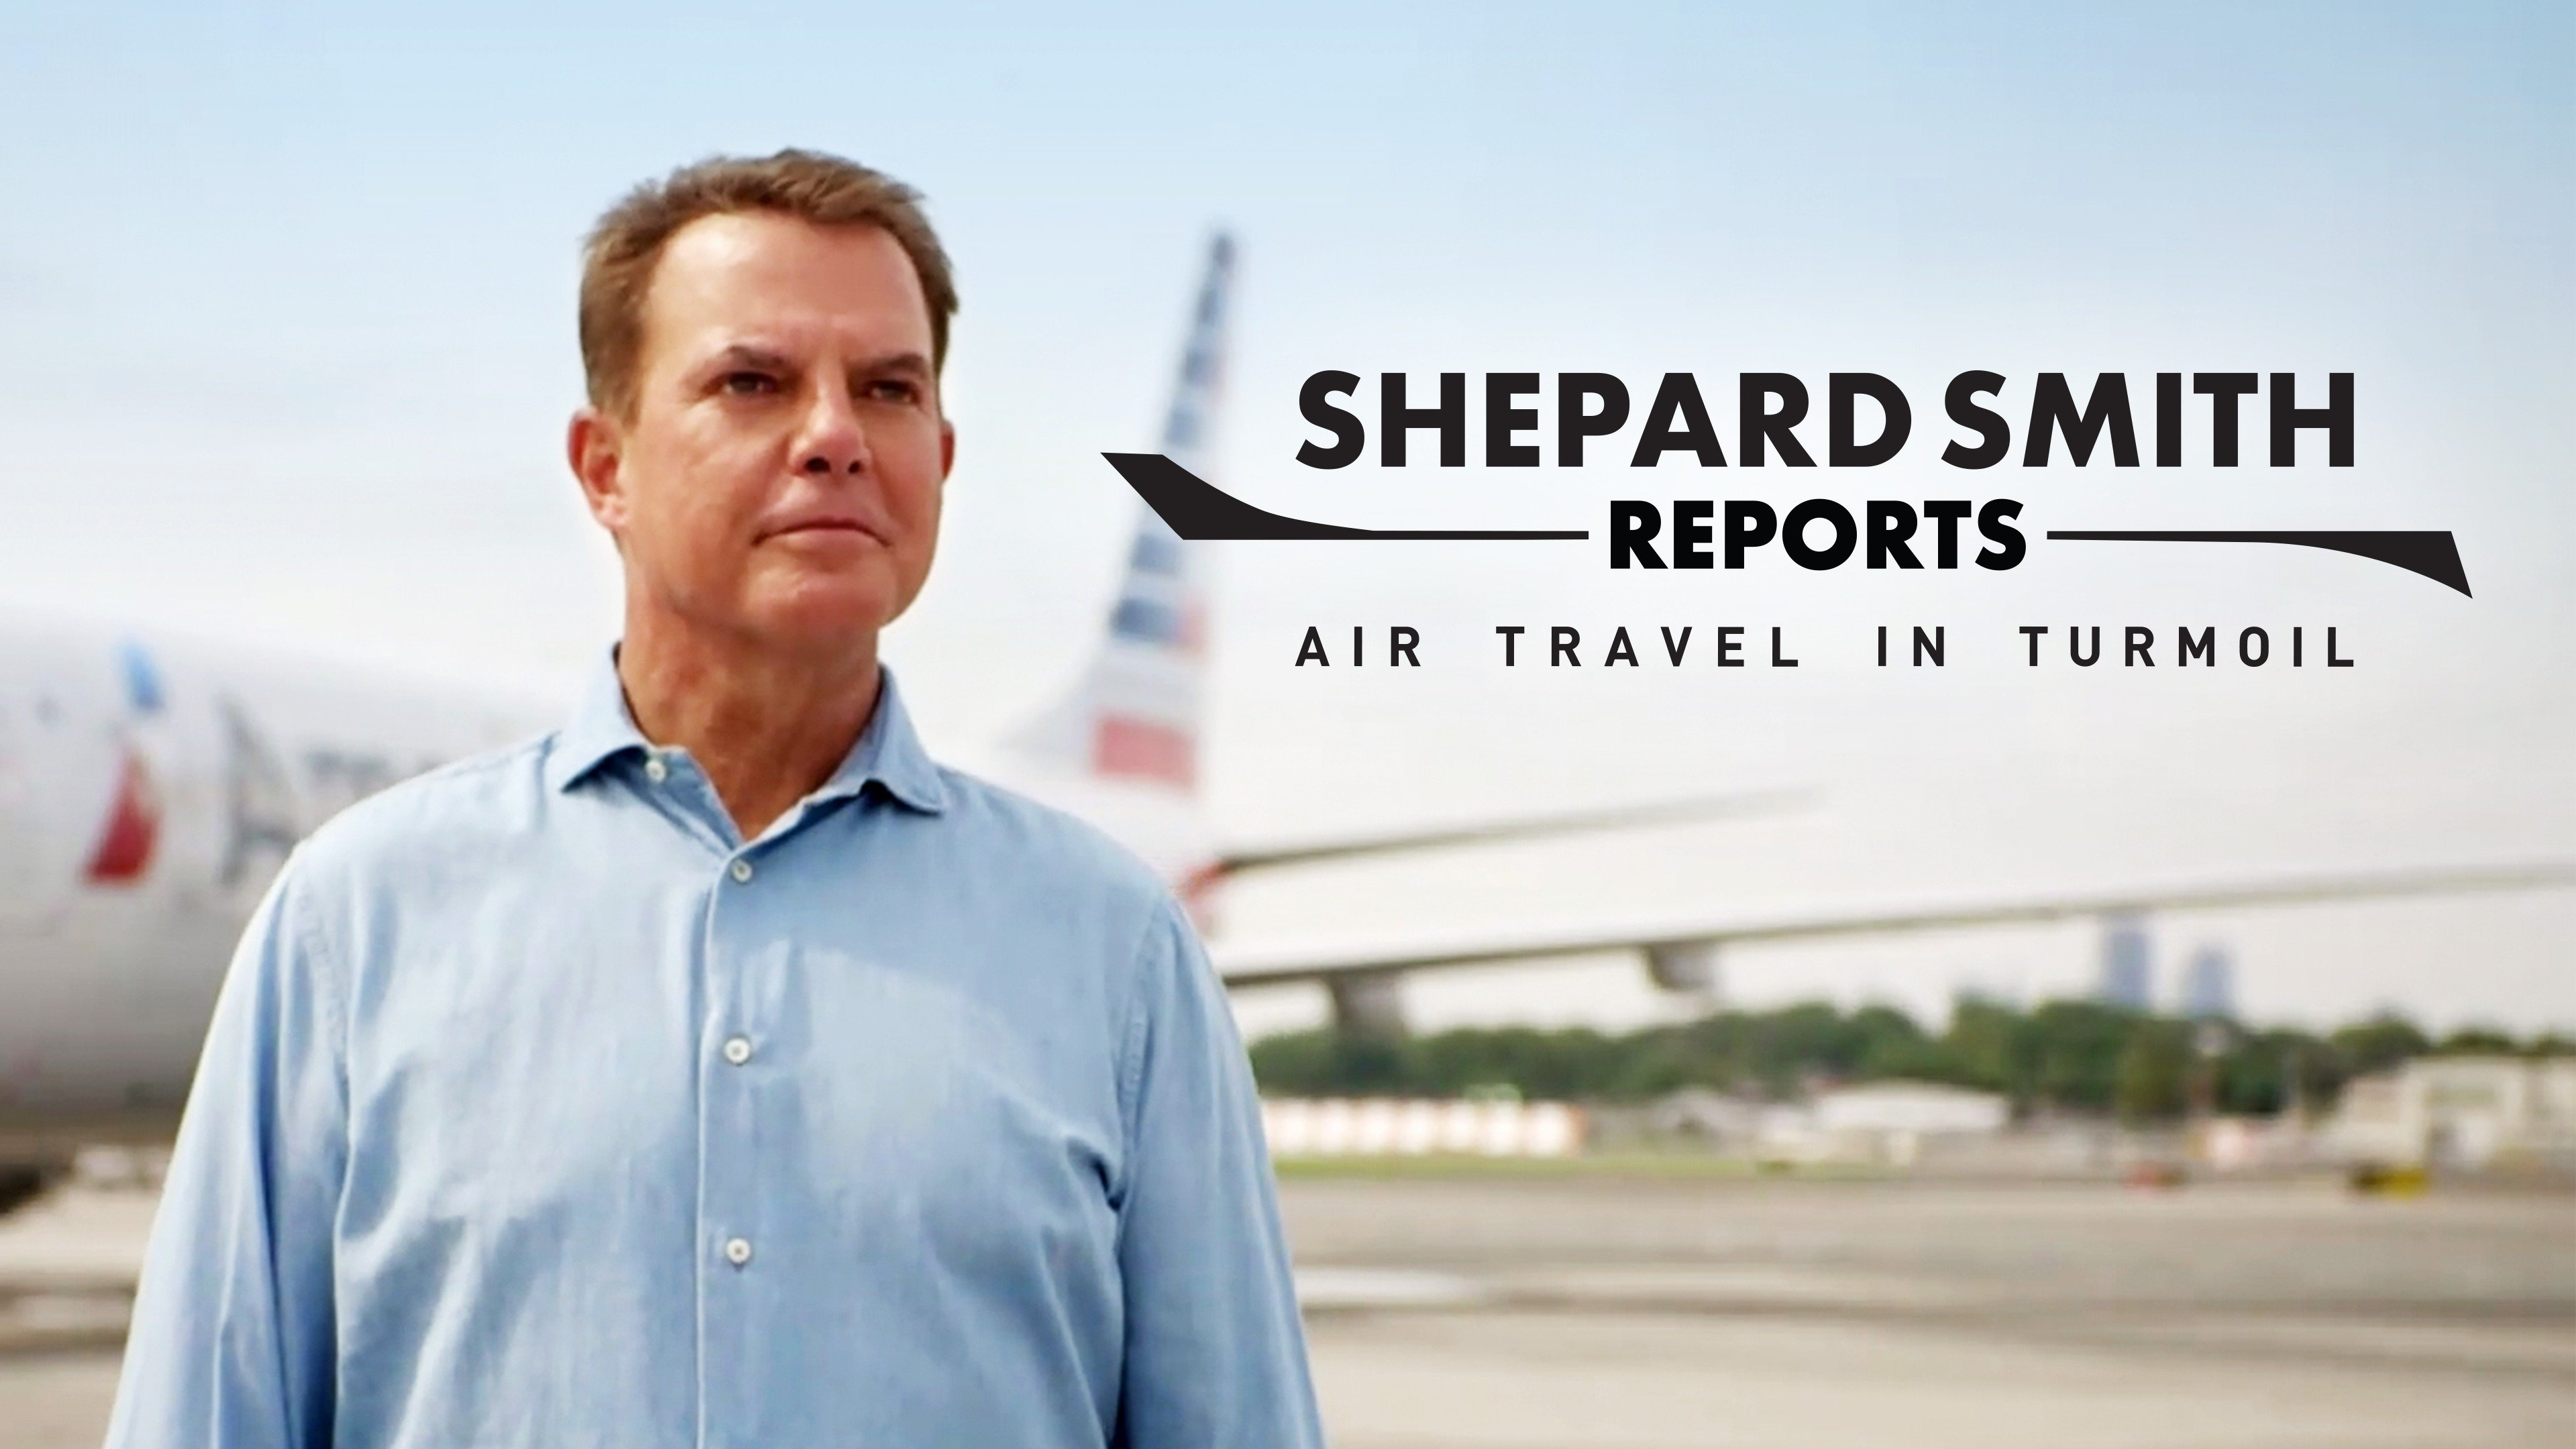 Shepard Smith Reports: Air Travel in Turmoil